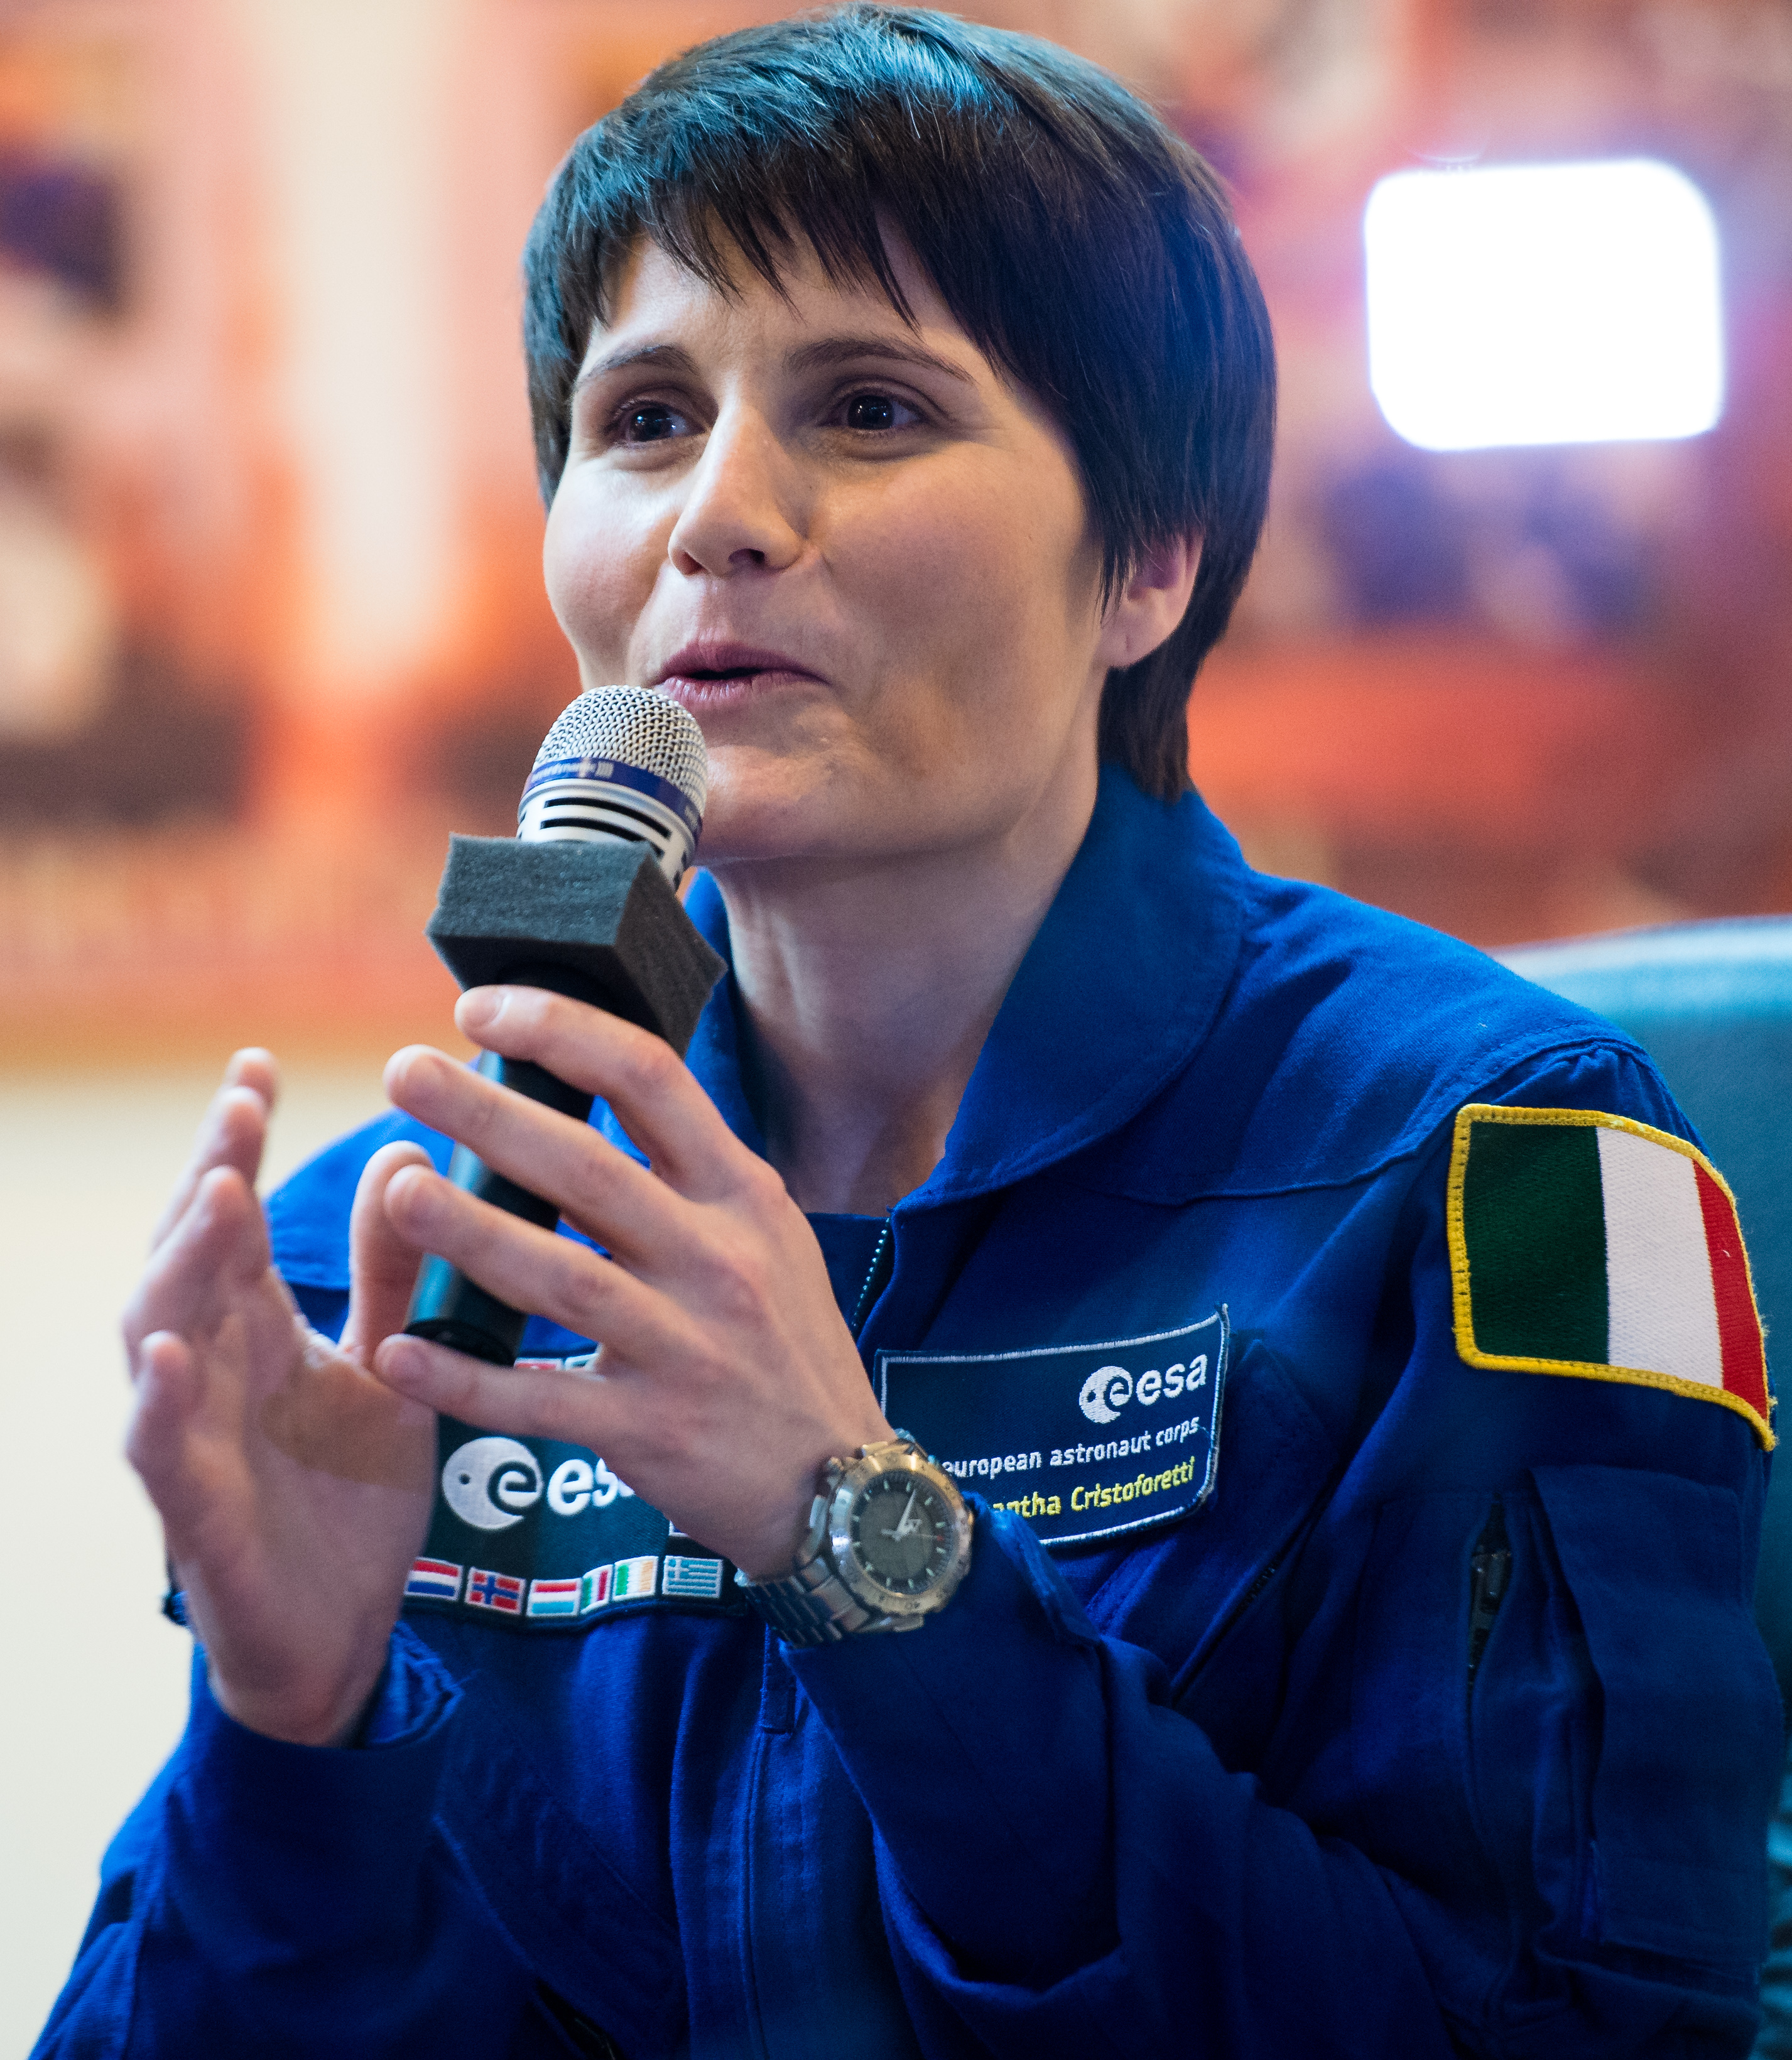 First Italian Woman In Space What She Use As Watch